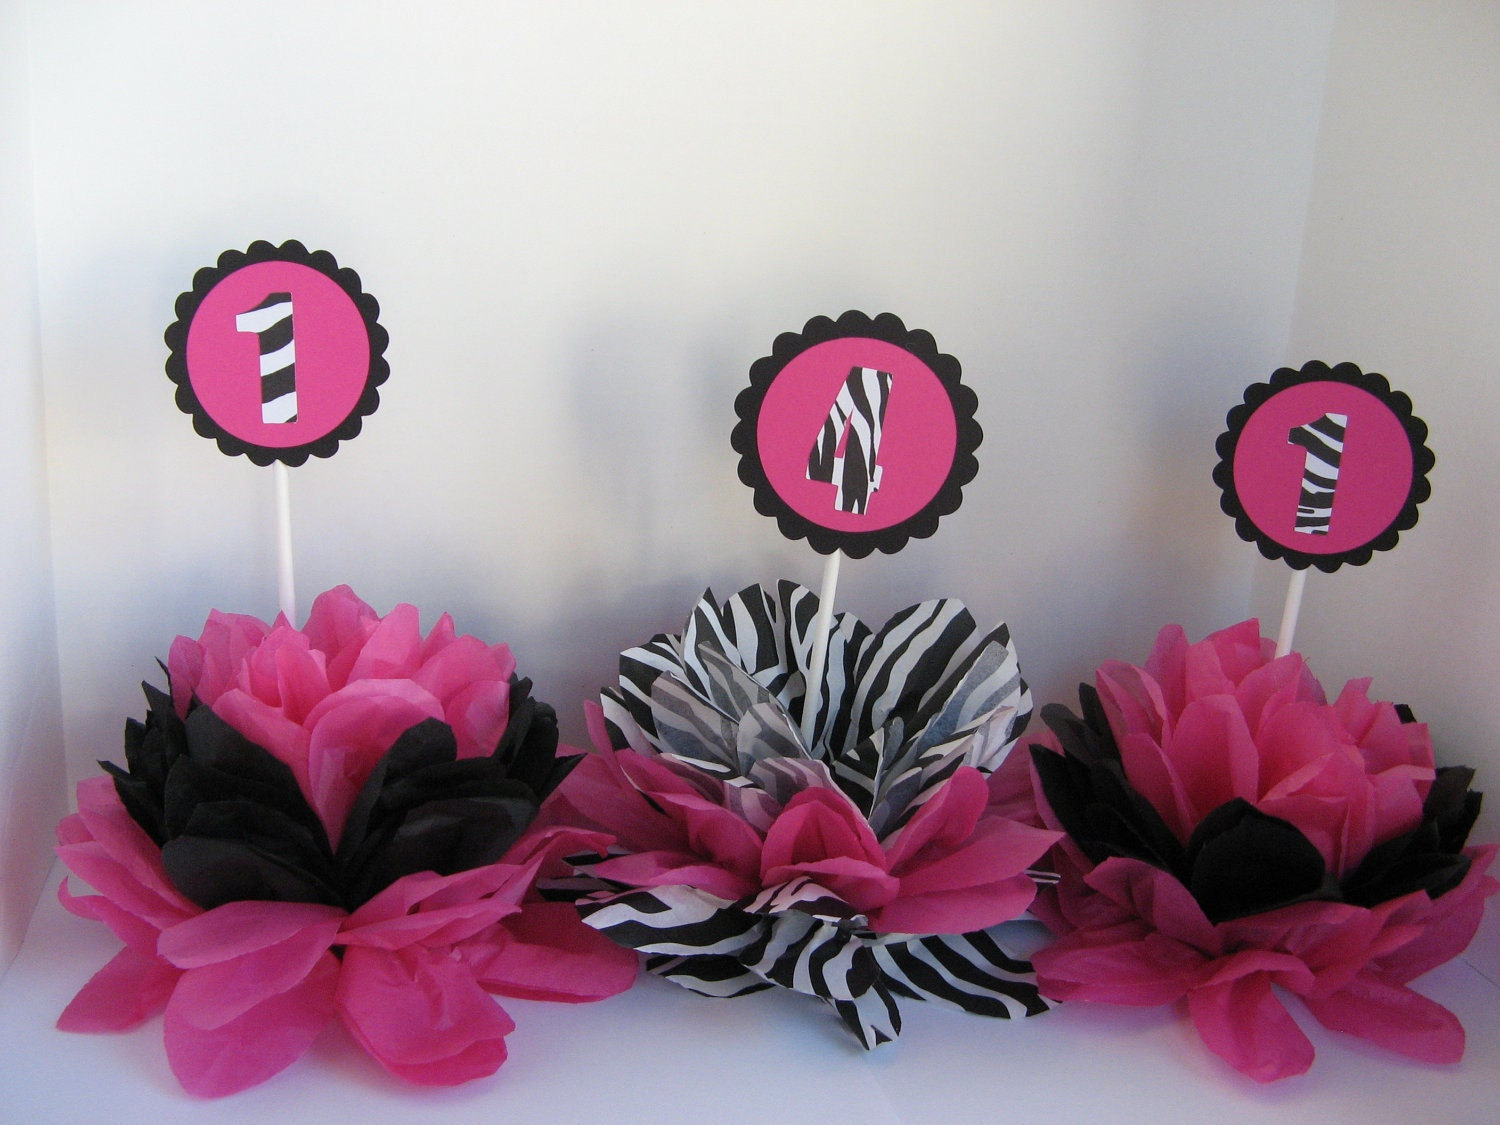 Leopard Print Party Decorations Fun Girl Party Party Ideas Pinterest Girls Parties And